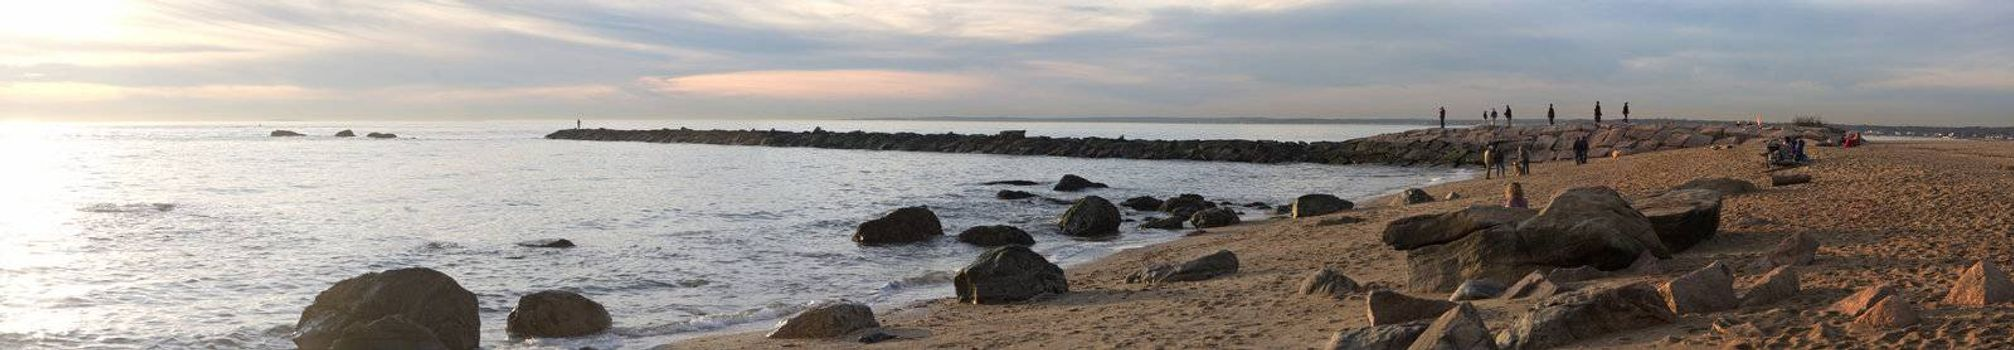 The Connecticut shoreline overlooking the Long Island Sound in Hammonasset State Park.